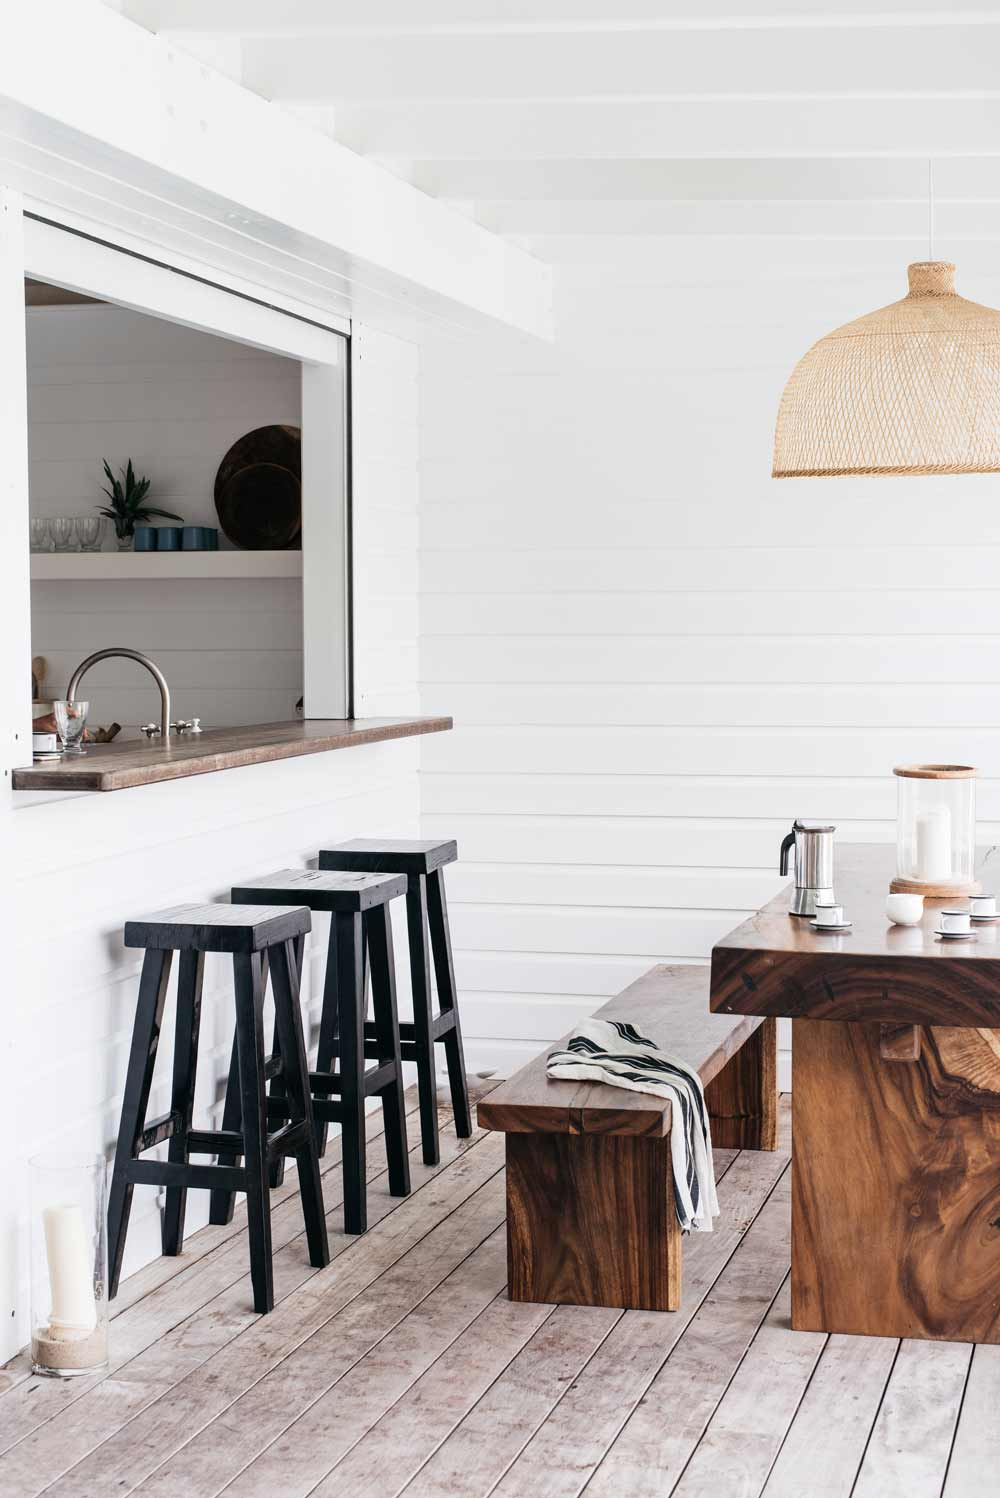 wooden terrace, wooden floor, white wooden wall, open kitchen, black wooden stools, brown wooden table and bench, rattan pendant